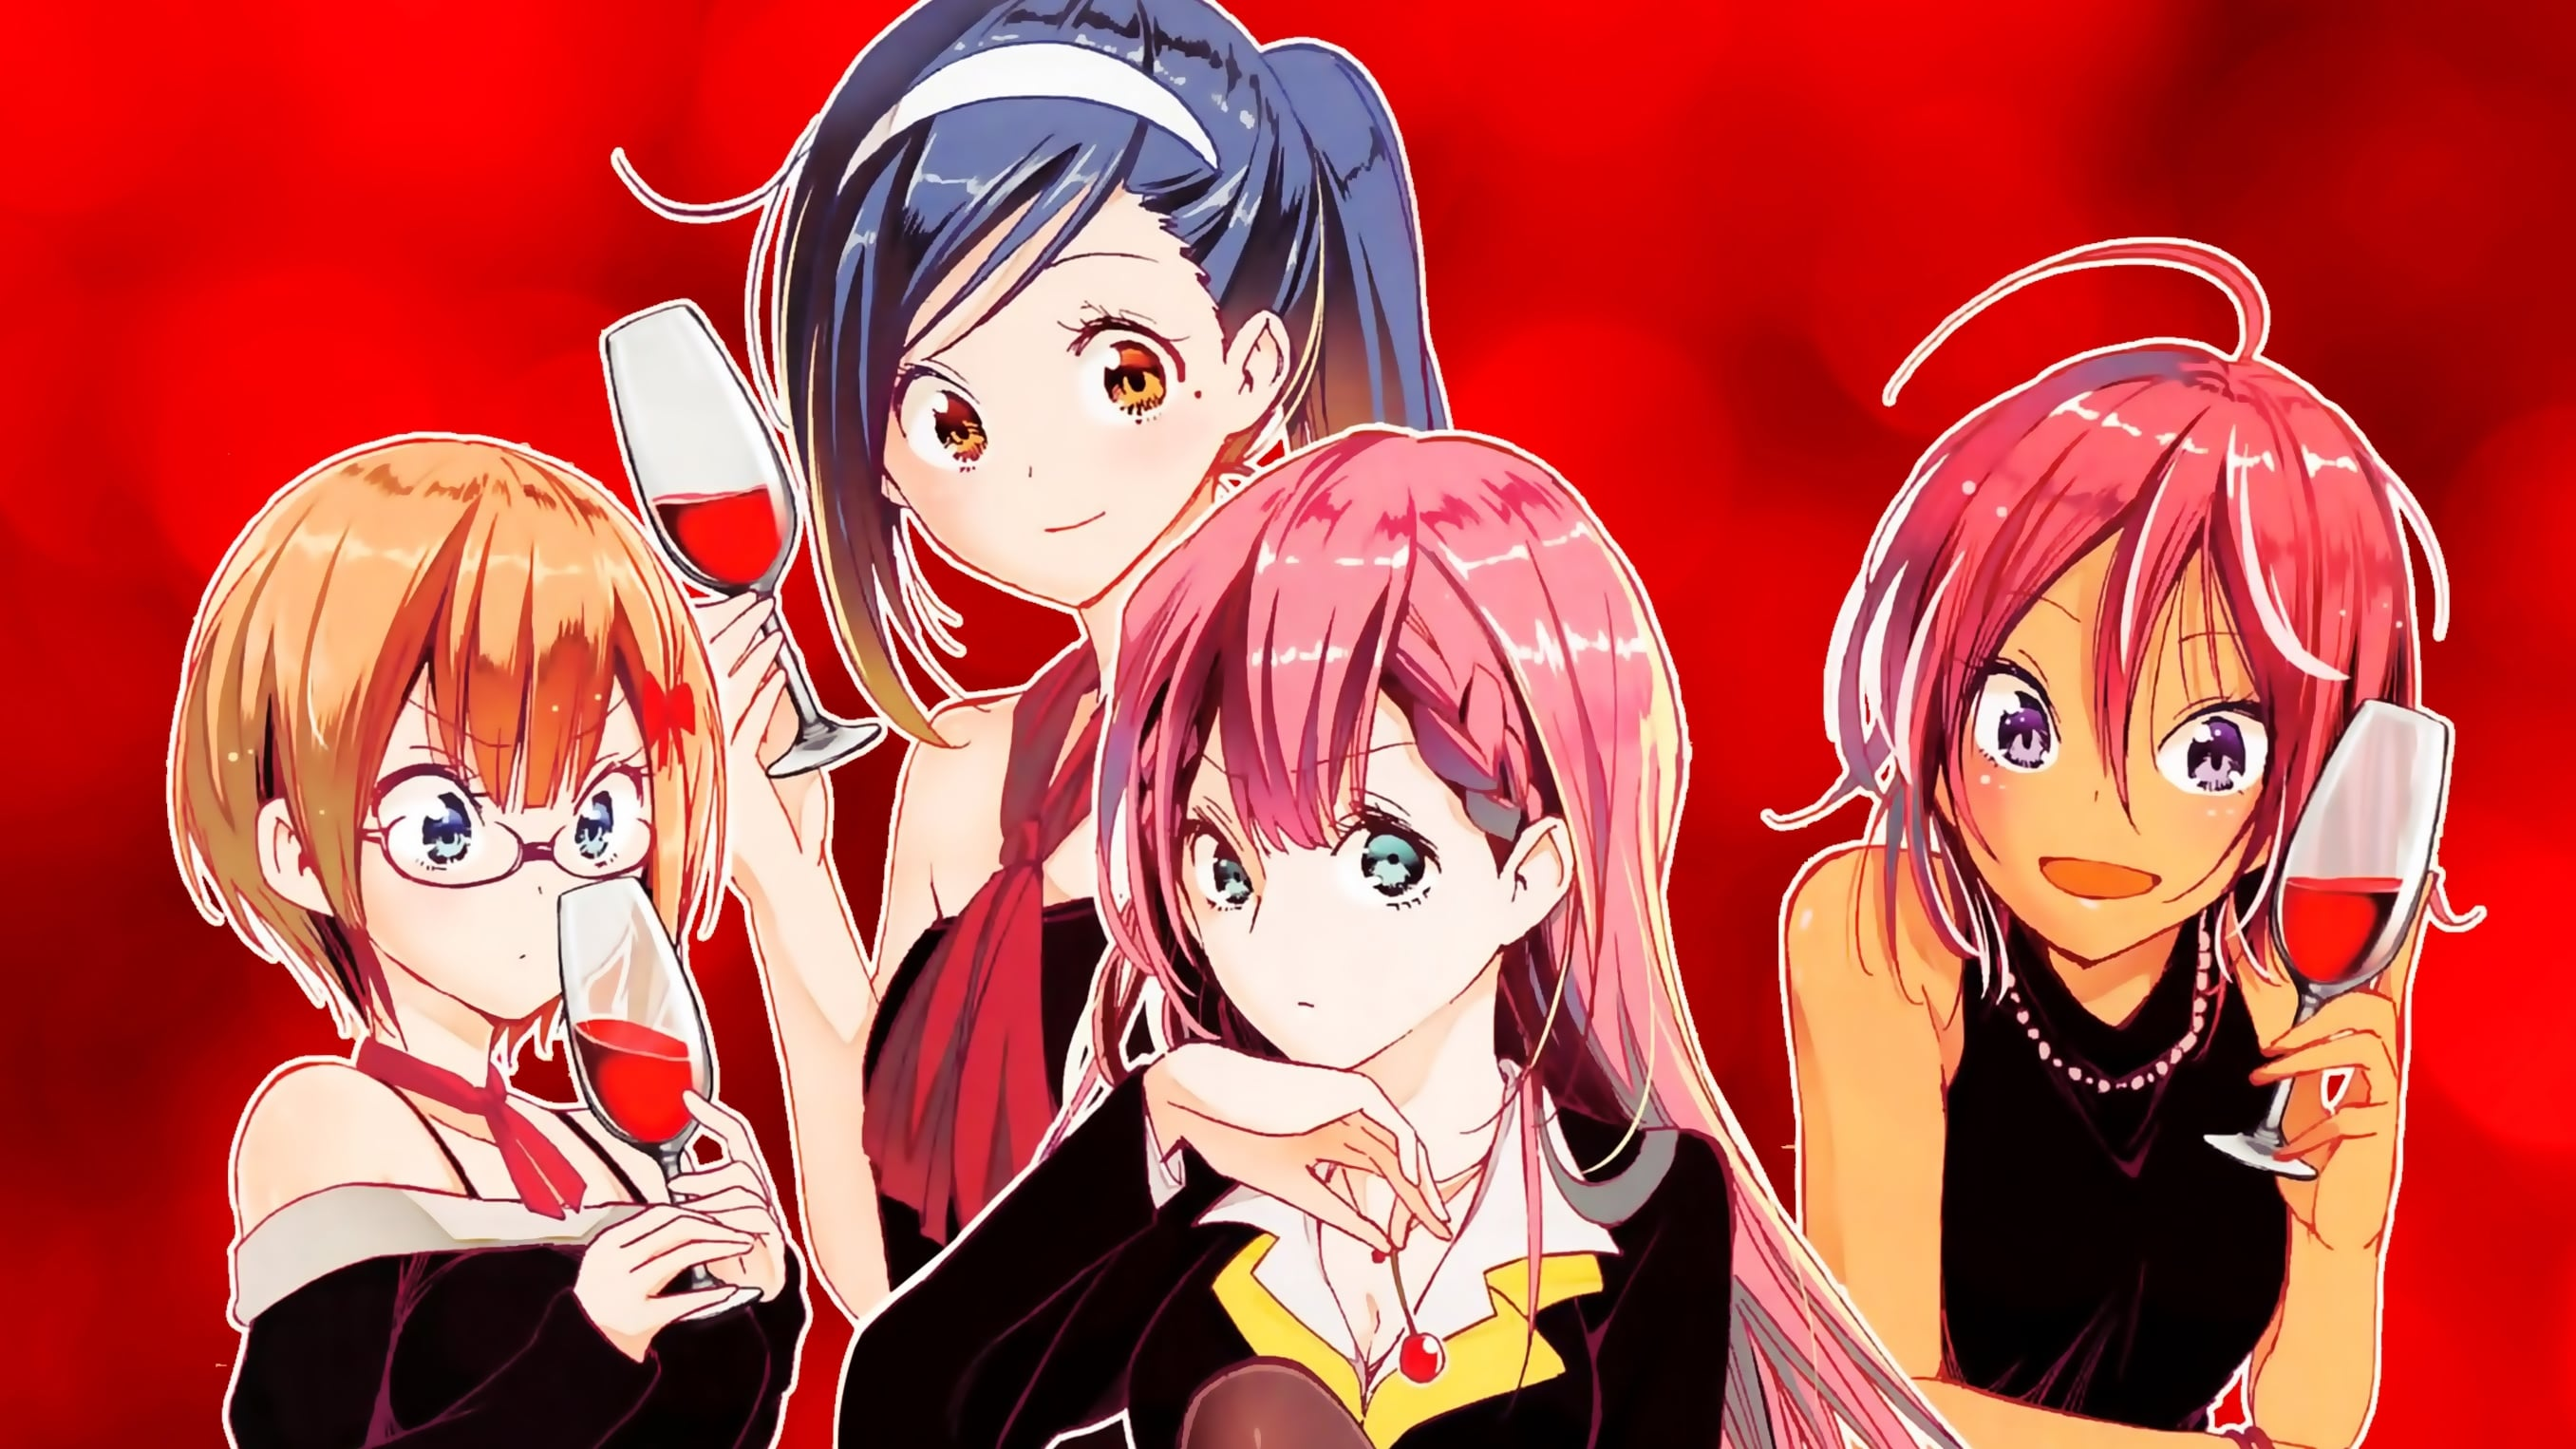 We Never Learn HD Wallpaper | Background Image | 2713x1526 | ID:1000295 - Wallpaper Abyss